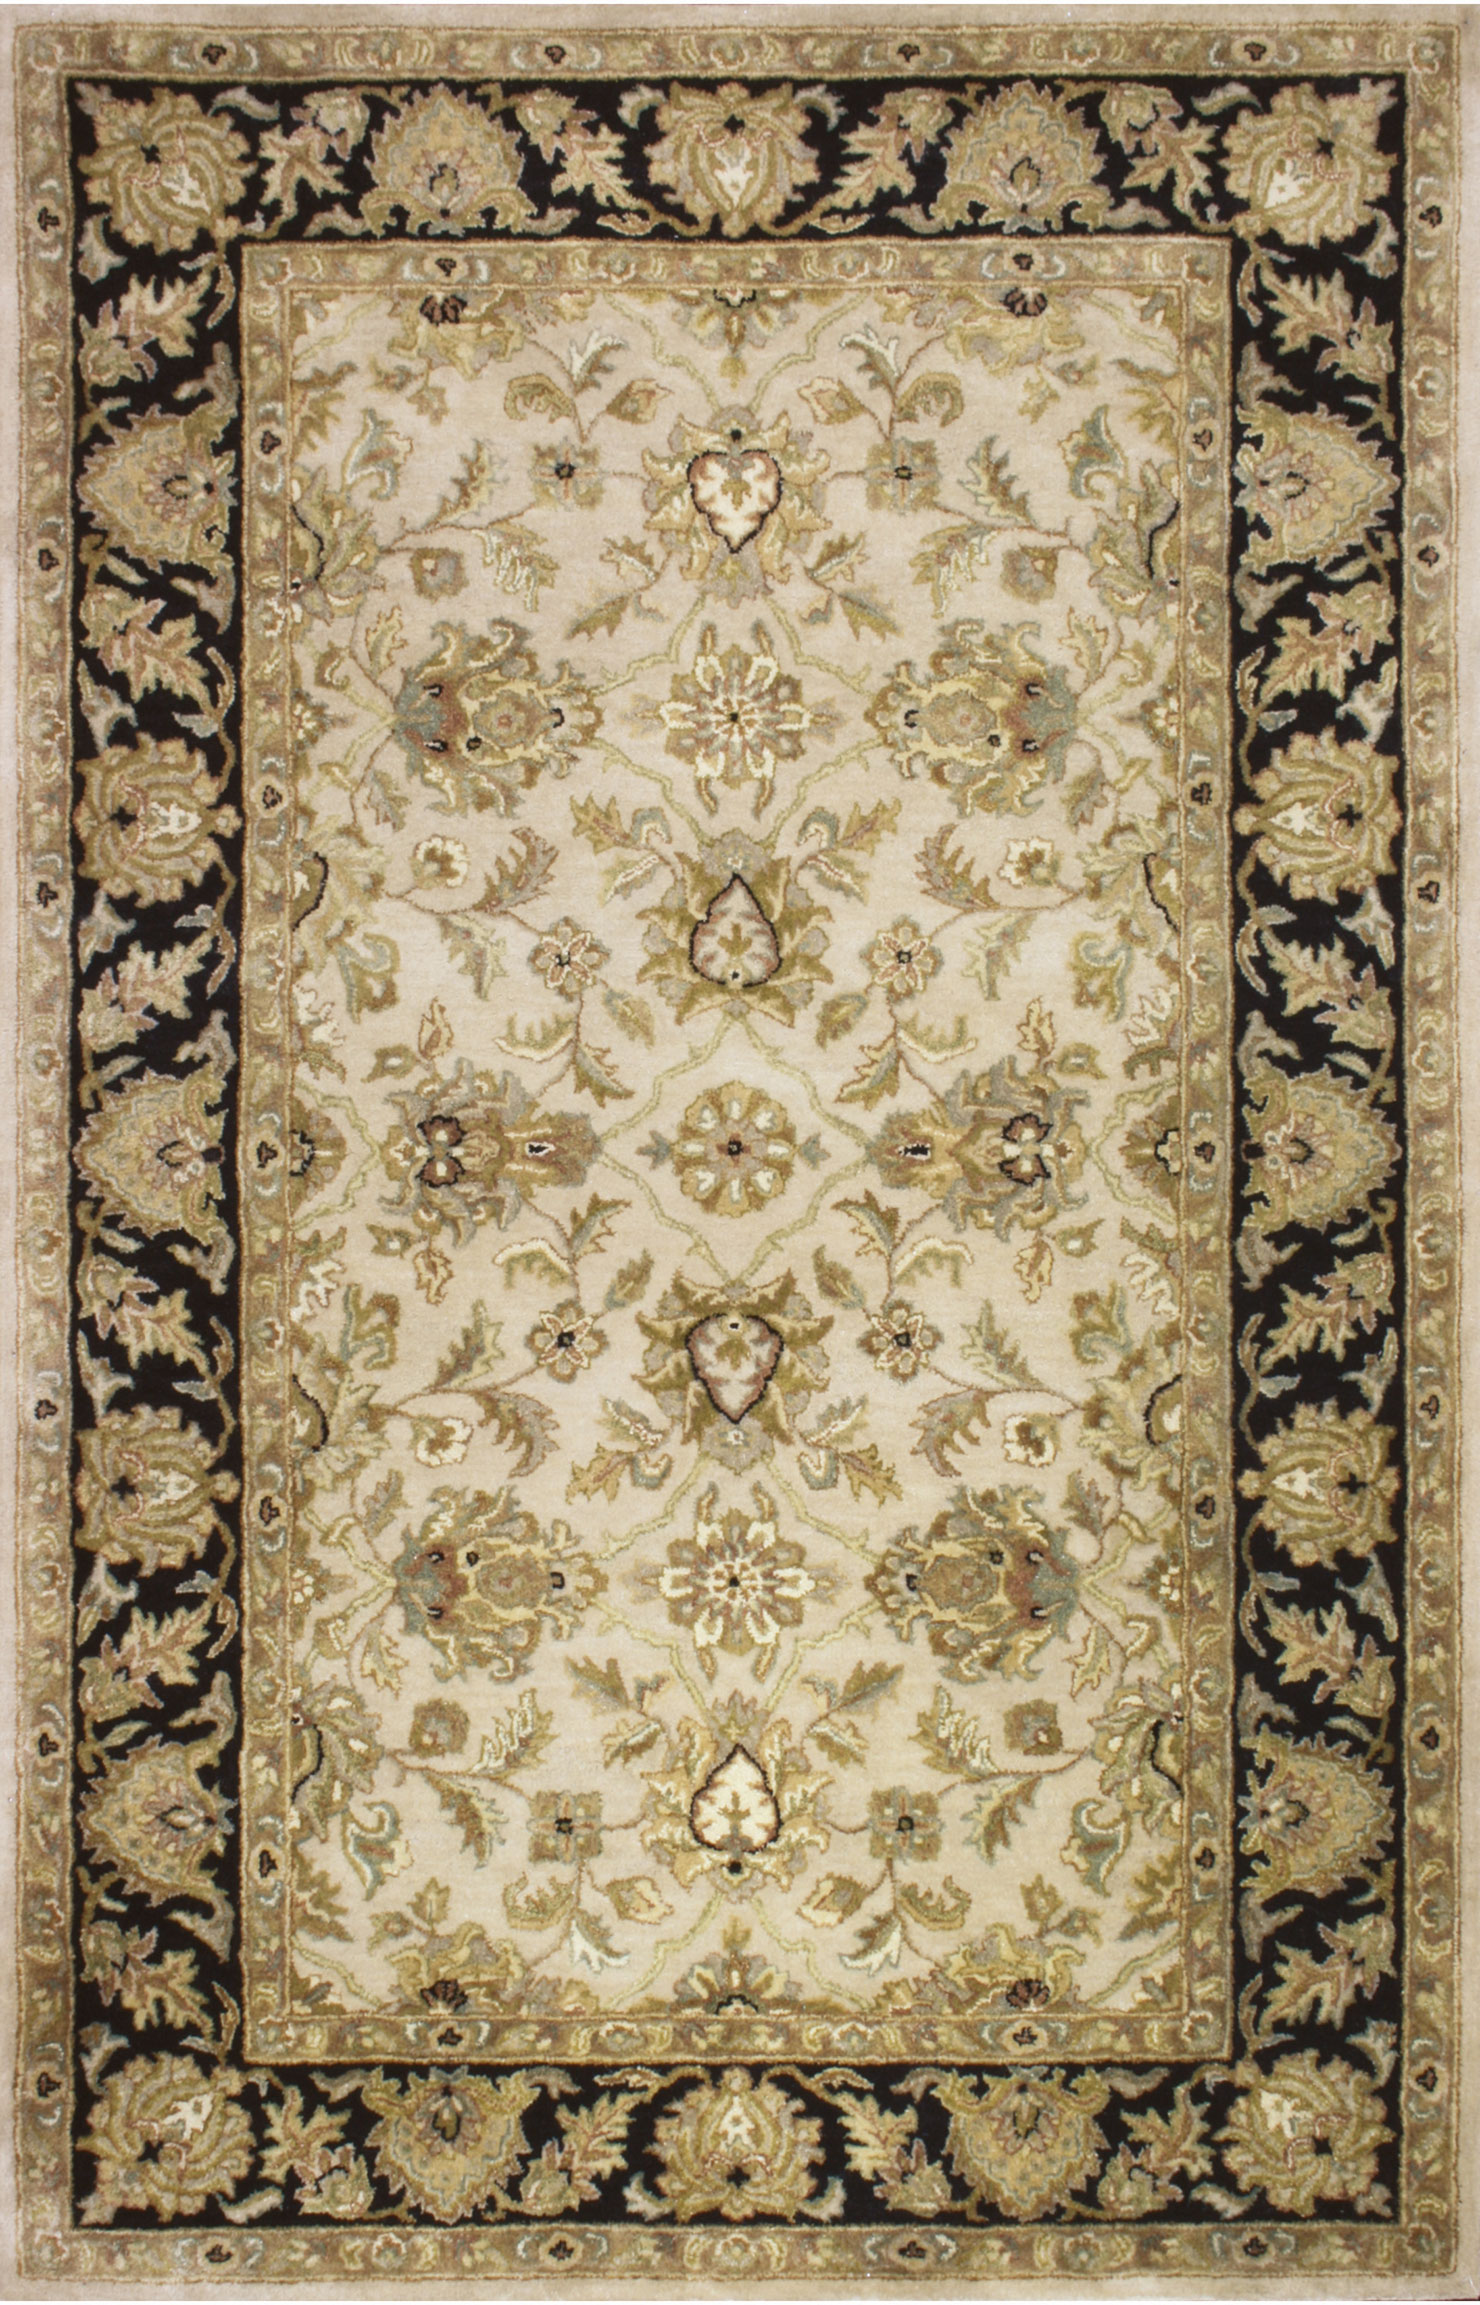 Legacy Le 93 Tan Hand Tufted Area Rug Affordable